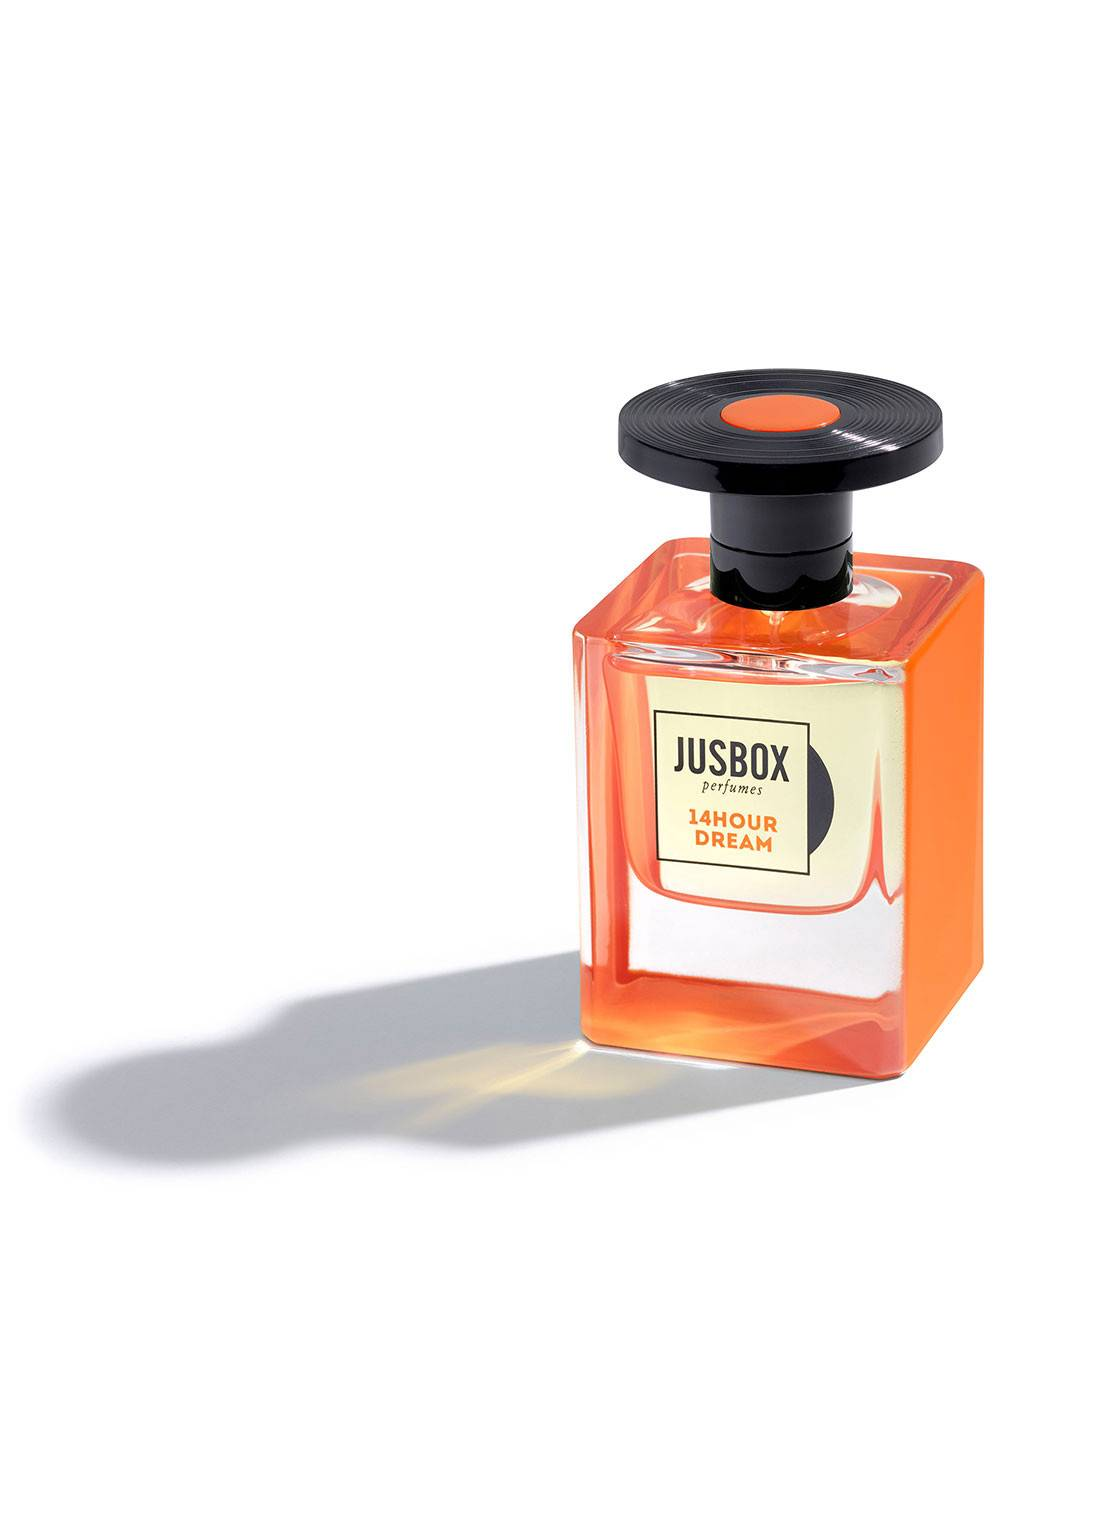 jusbox Eau de Parfum 14Hour Dream -